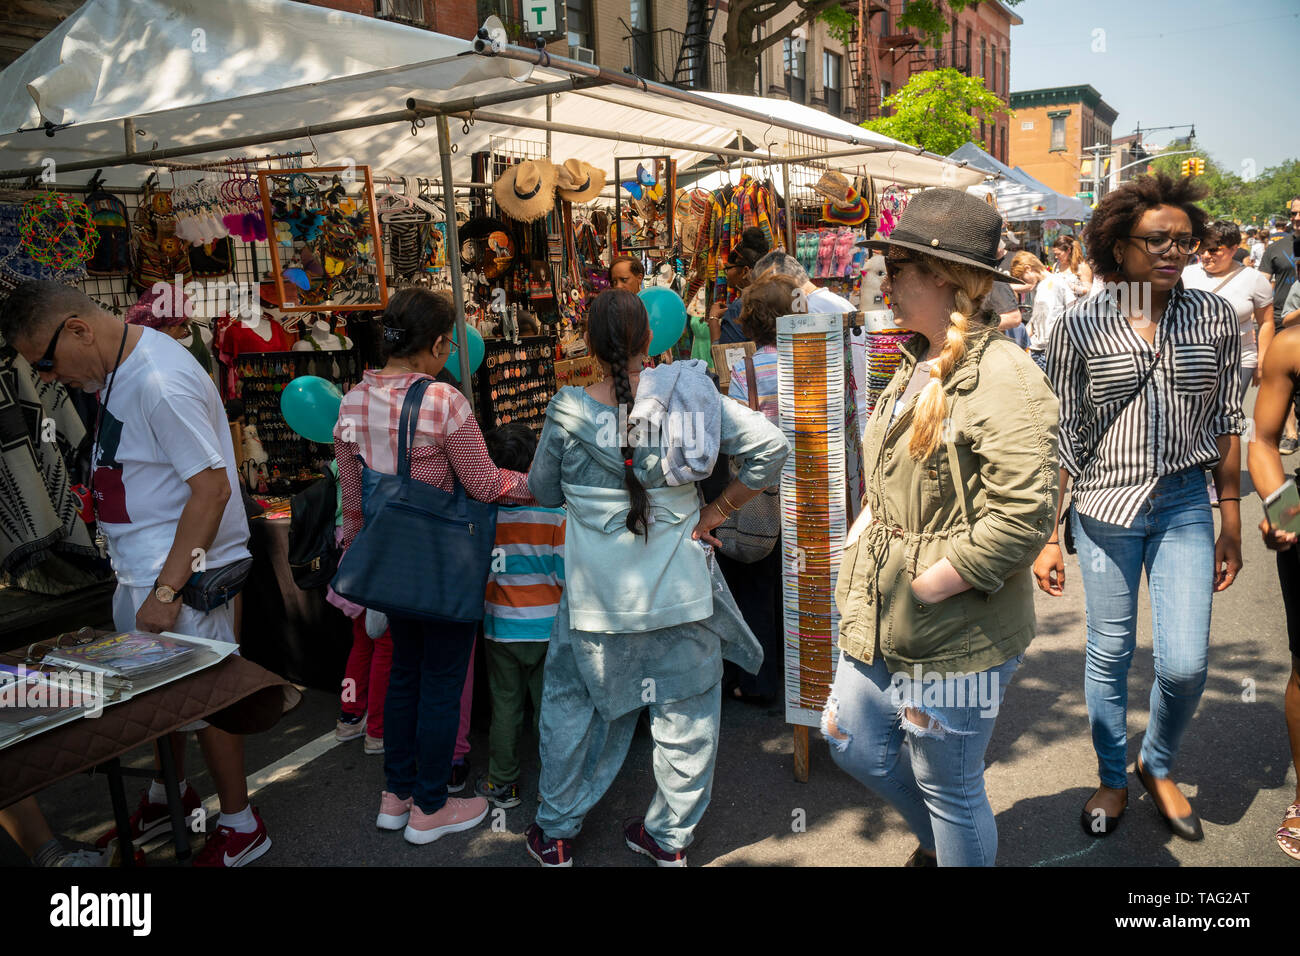 Crowds enjoy the activities afforded them at a street fair in the Park Slope neighborhood of Brooklyn in New York on Sunday, May 19, 2019. (© Richard B. Levine) - Stock Image